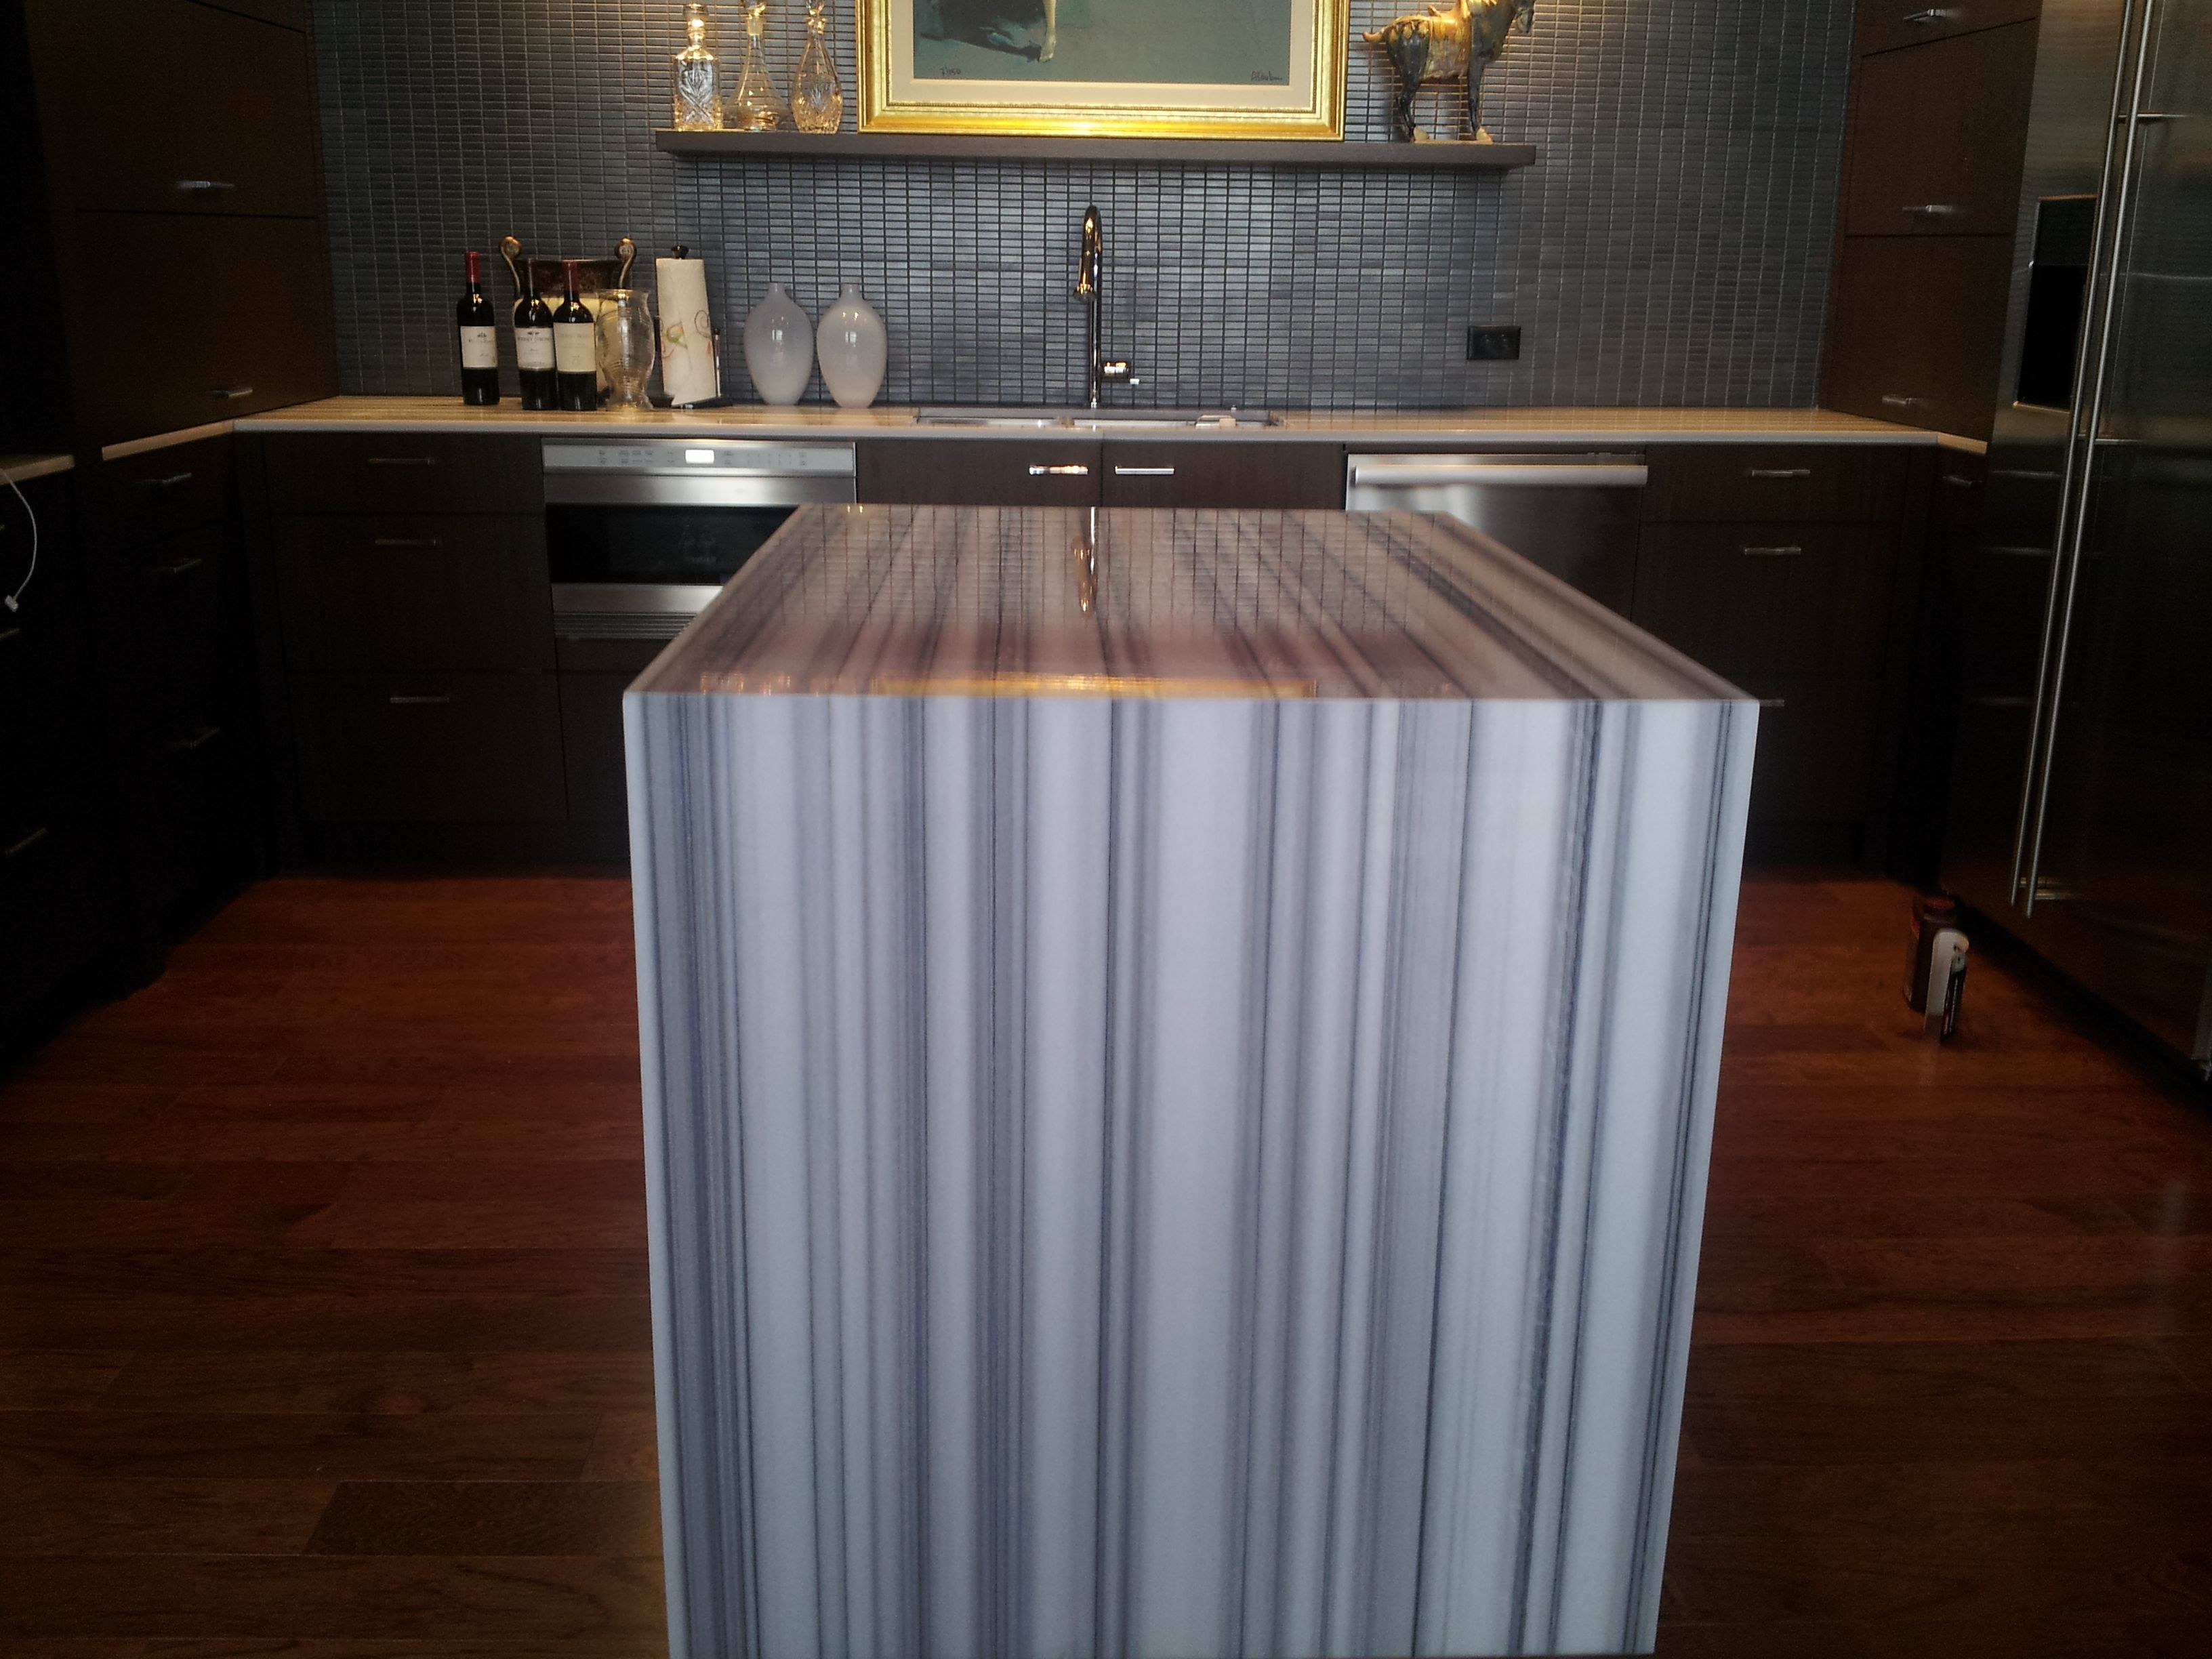 Equator Marble With Mitered Edge And Waterfall   Miami Circle Marble In  Atlanta